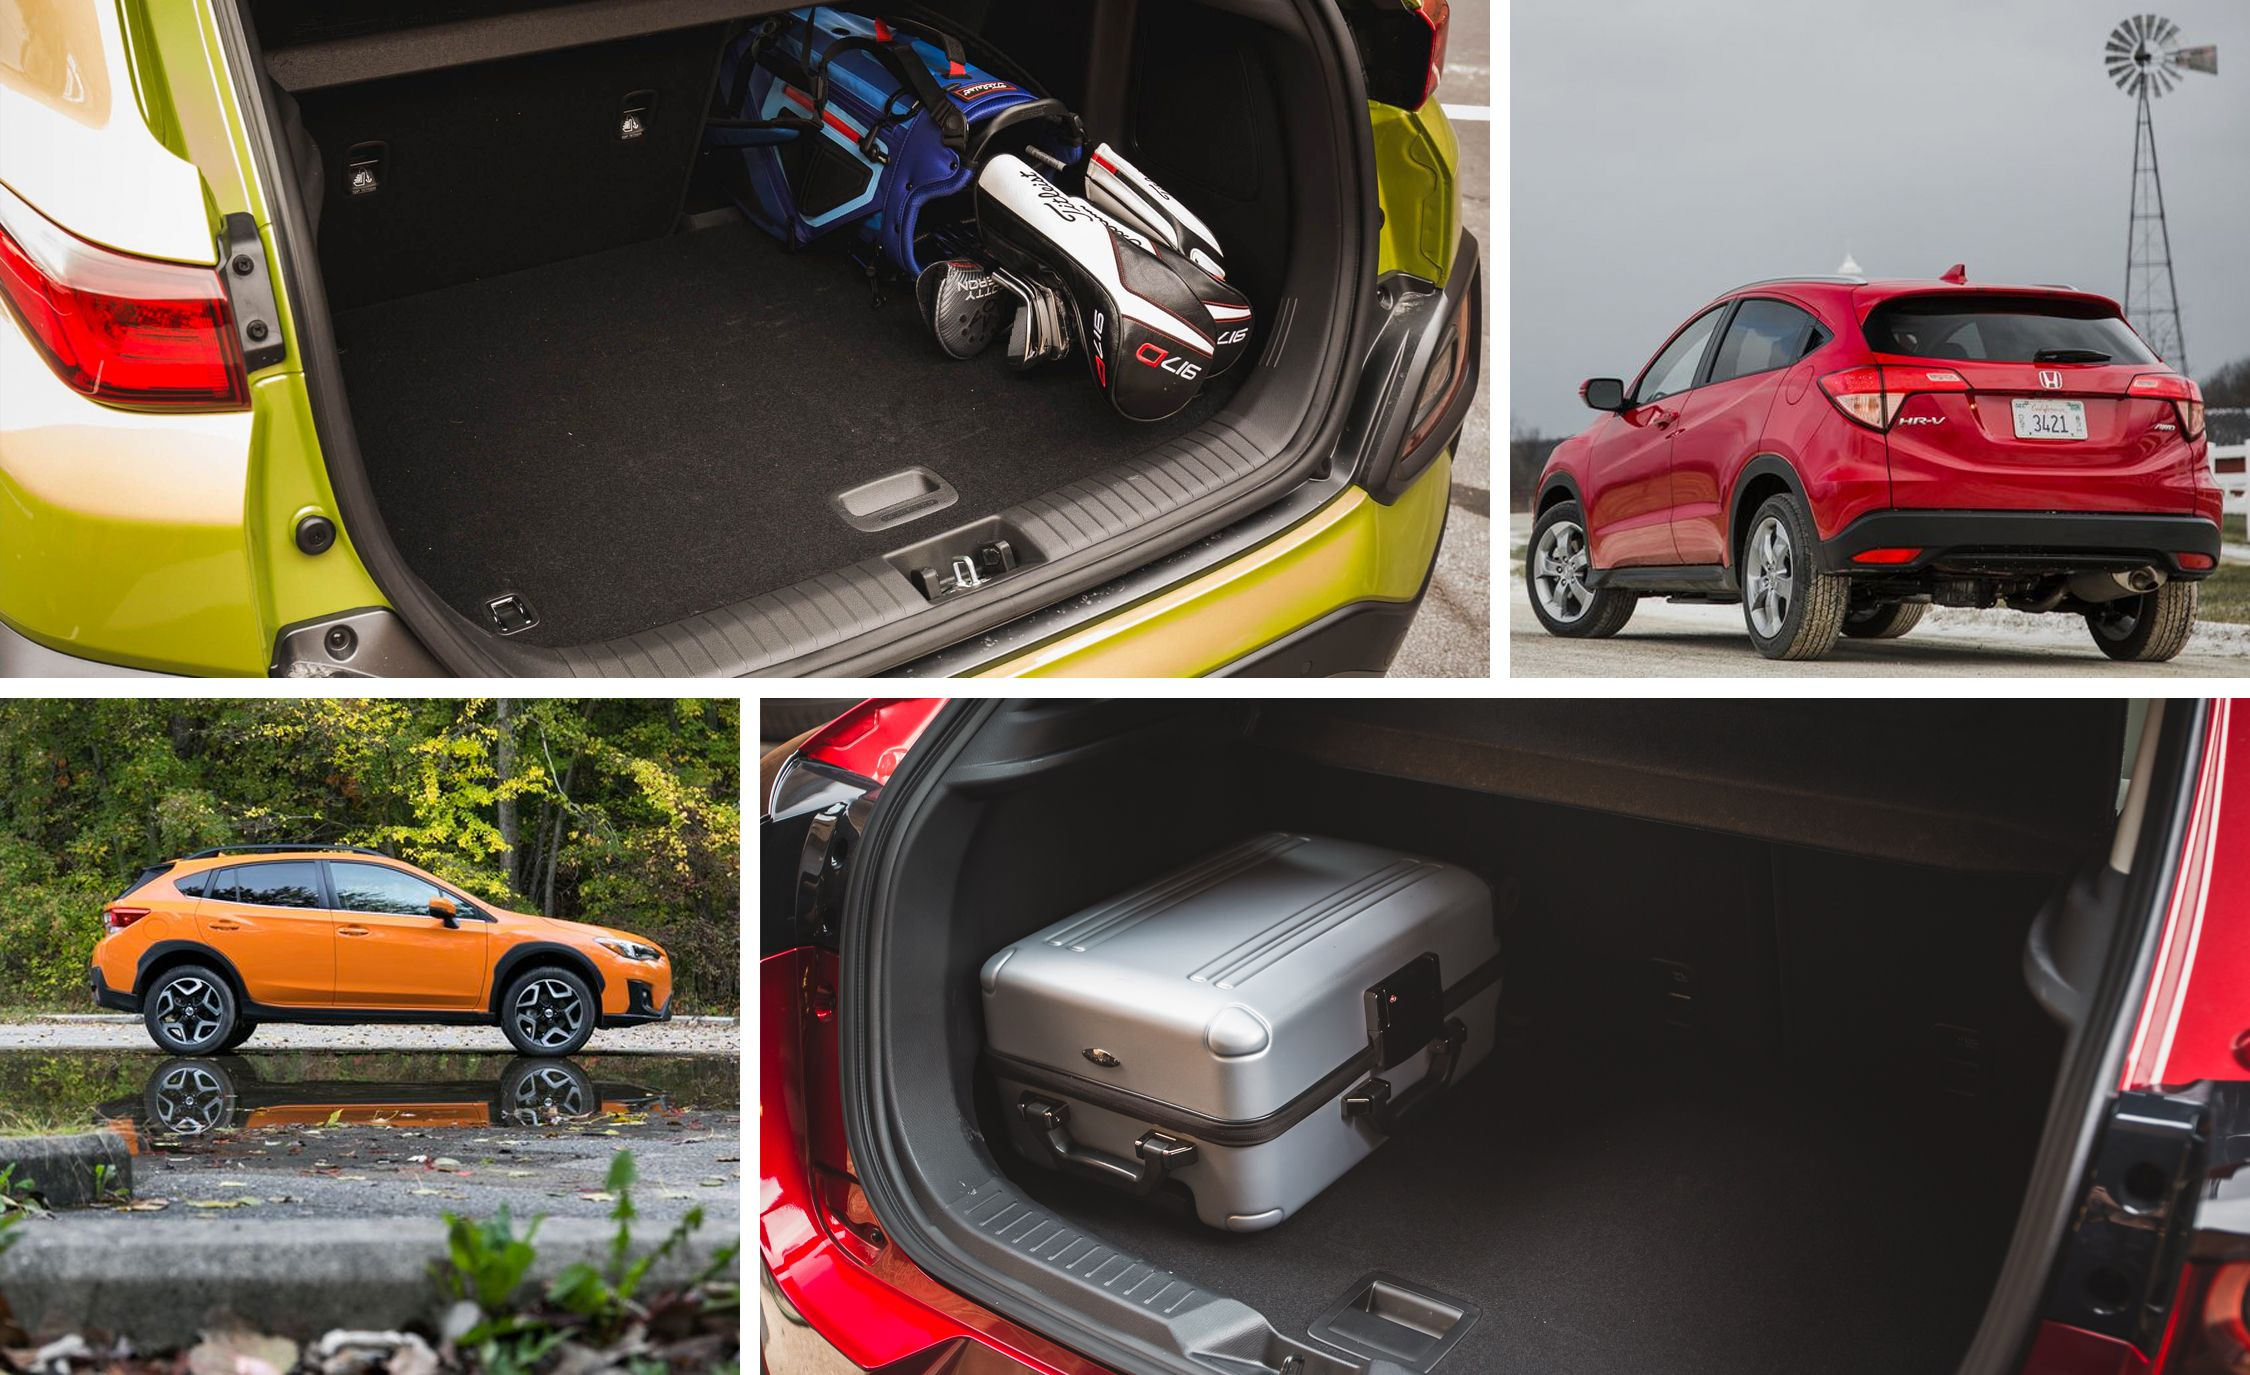 subcompact crossover and SUV cargo space rankings